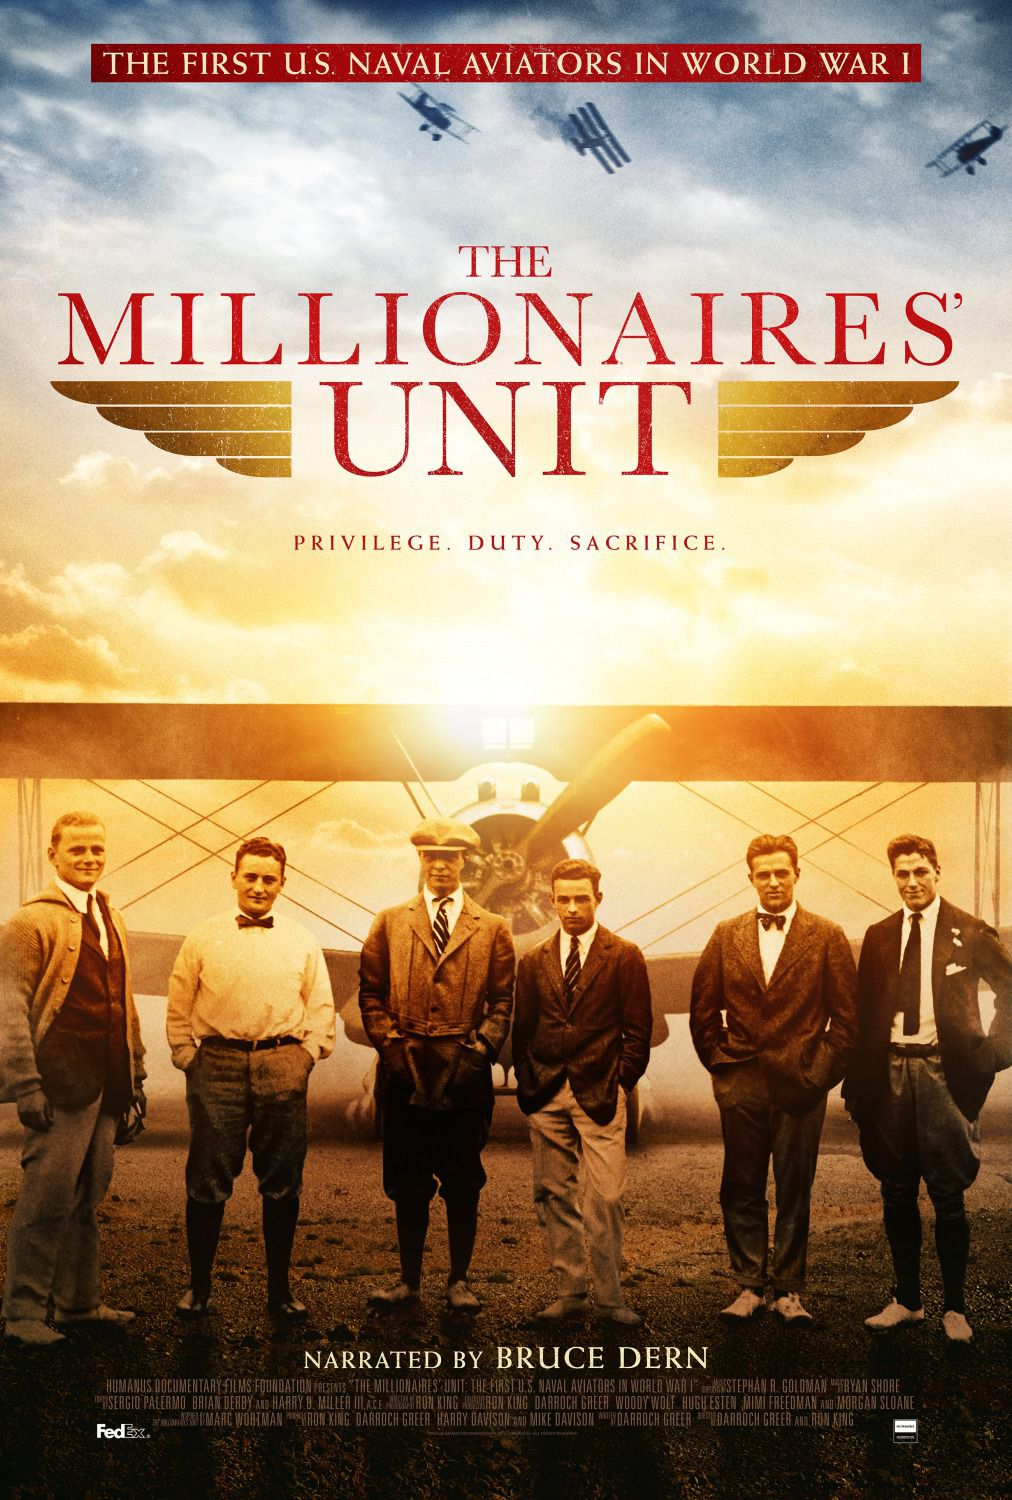 The Millionaires Unit - Narrated by Bruce Dern - Privilege, Duty, Sacrifice - First US Naval Aviator in World War I - film poster